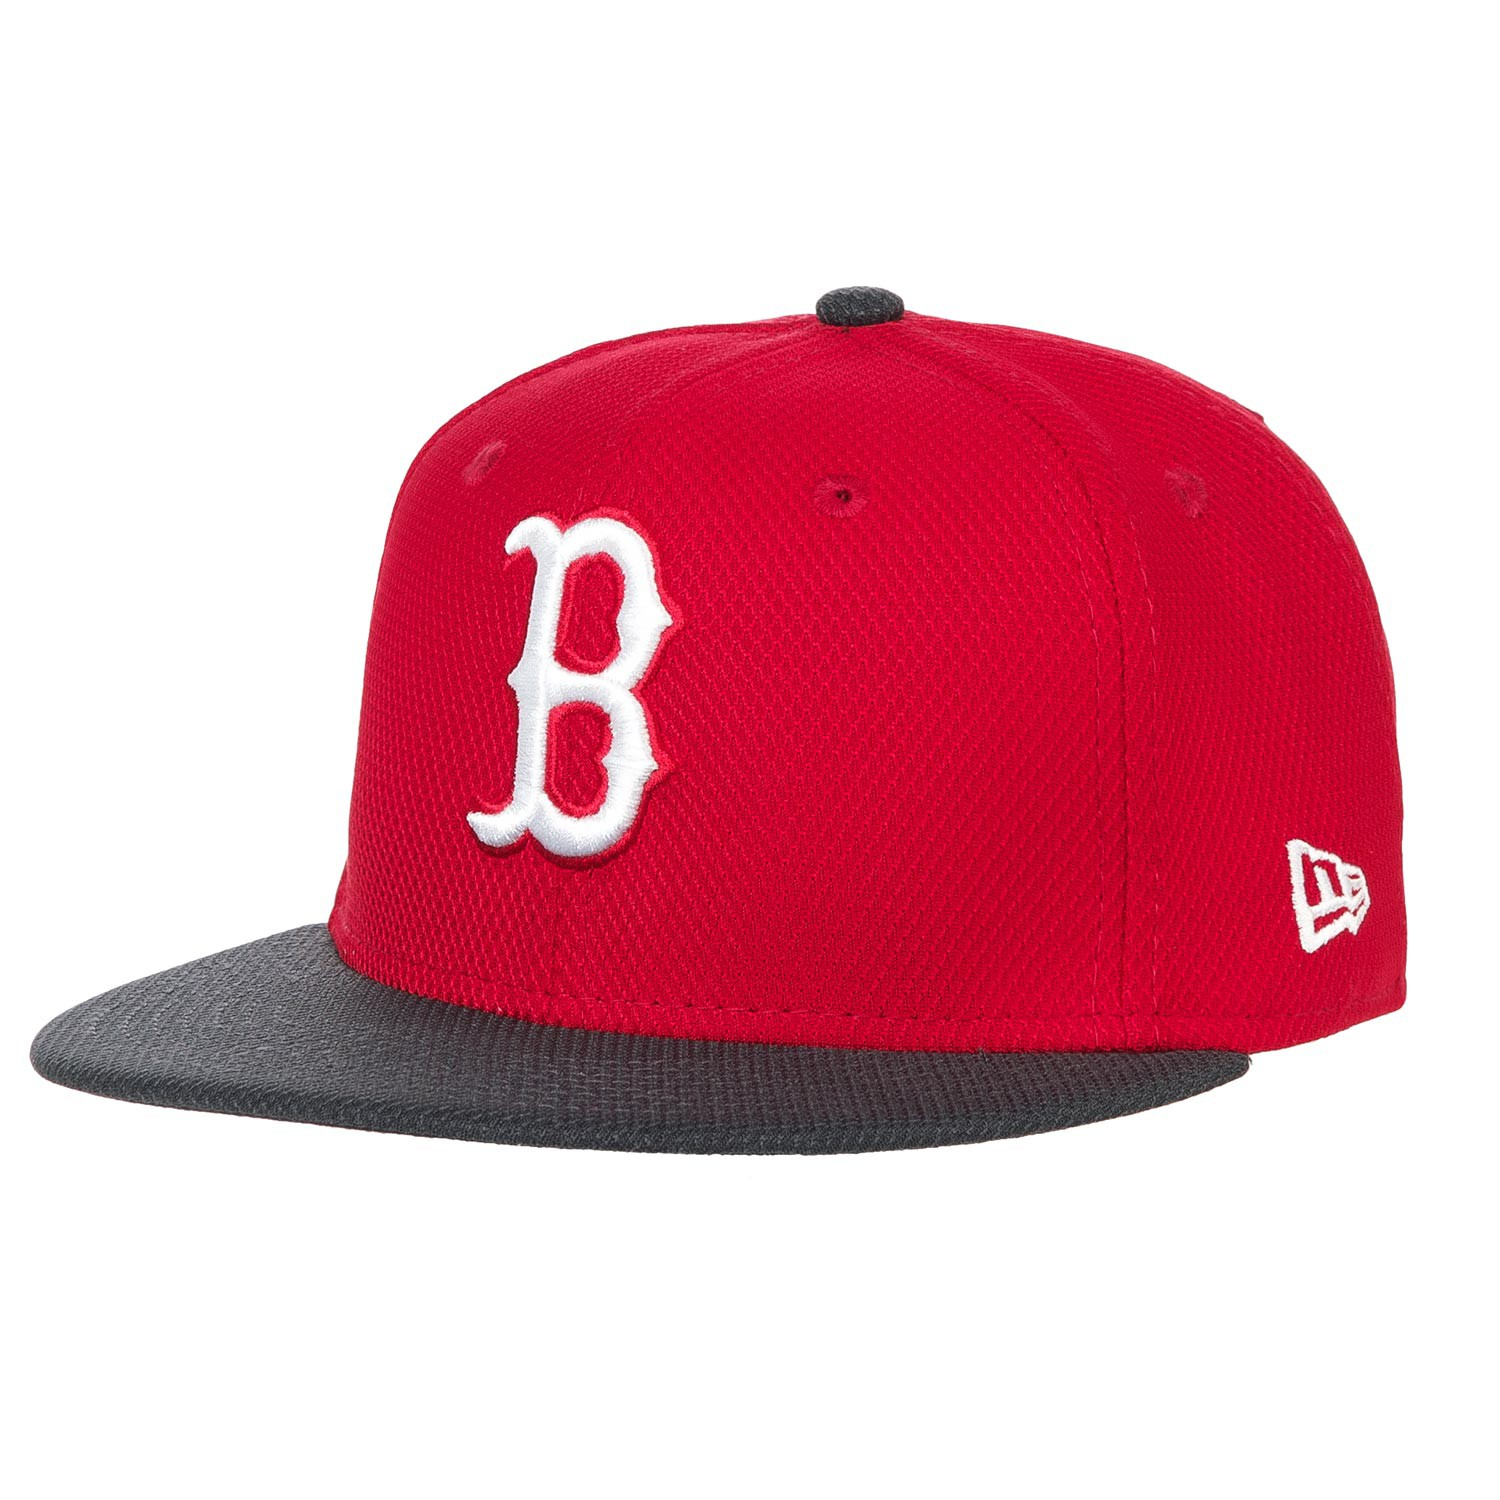 Kšiltovka New Era Boston Red Sox 9Fifty Diamond red/black vel.S/M 16 + doručení do 24 hodin